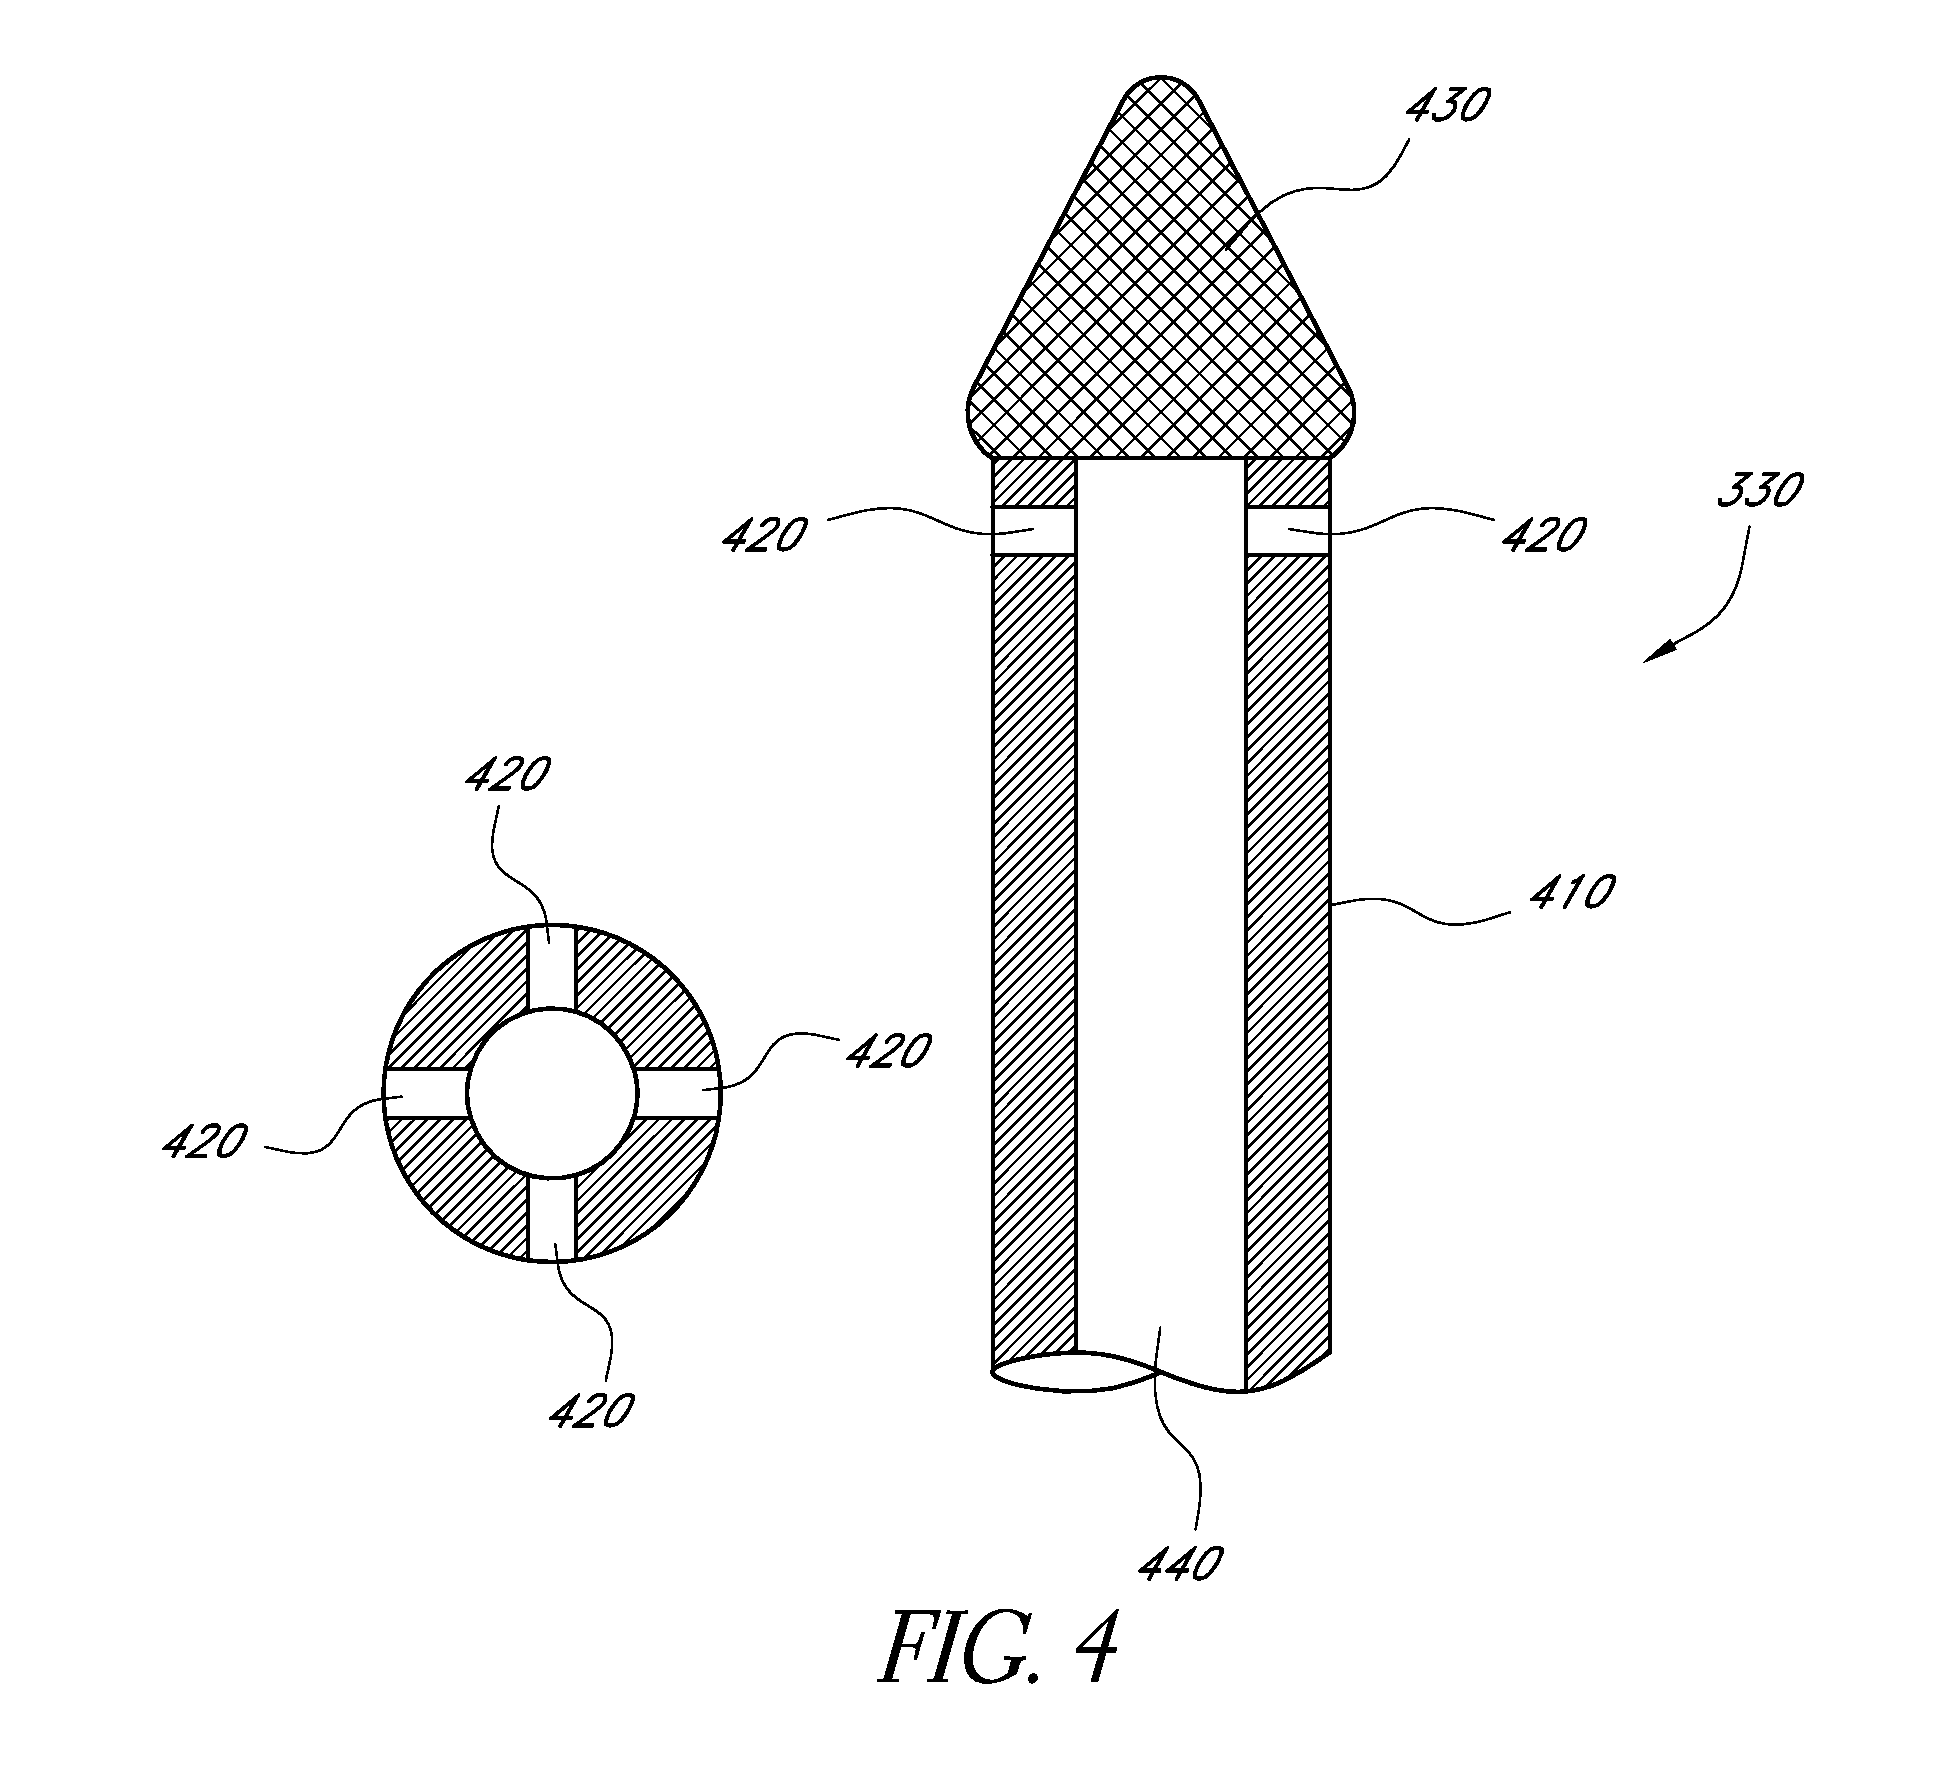 Mural Wall Thrombus Patent Us20100261662 Utilization Of Mural Thrombus For